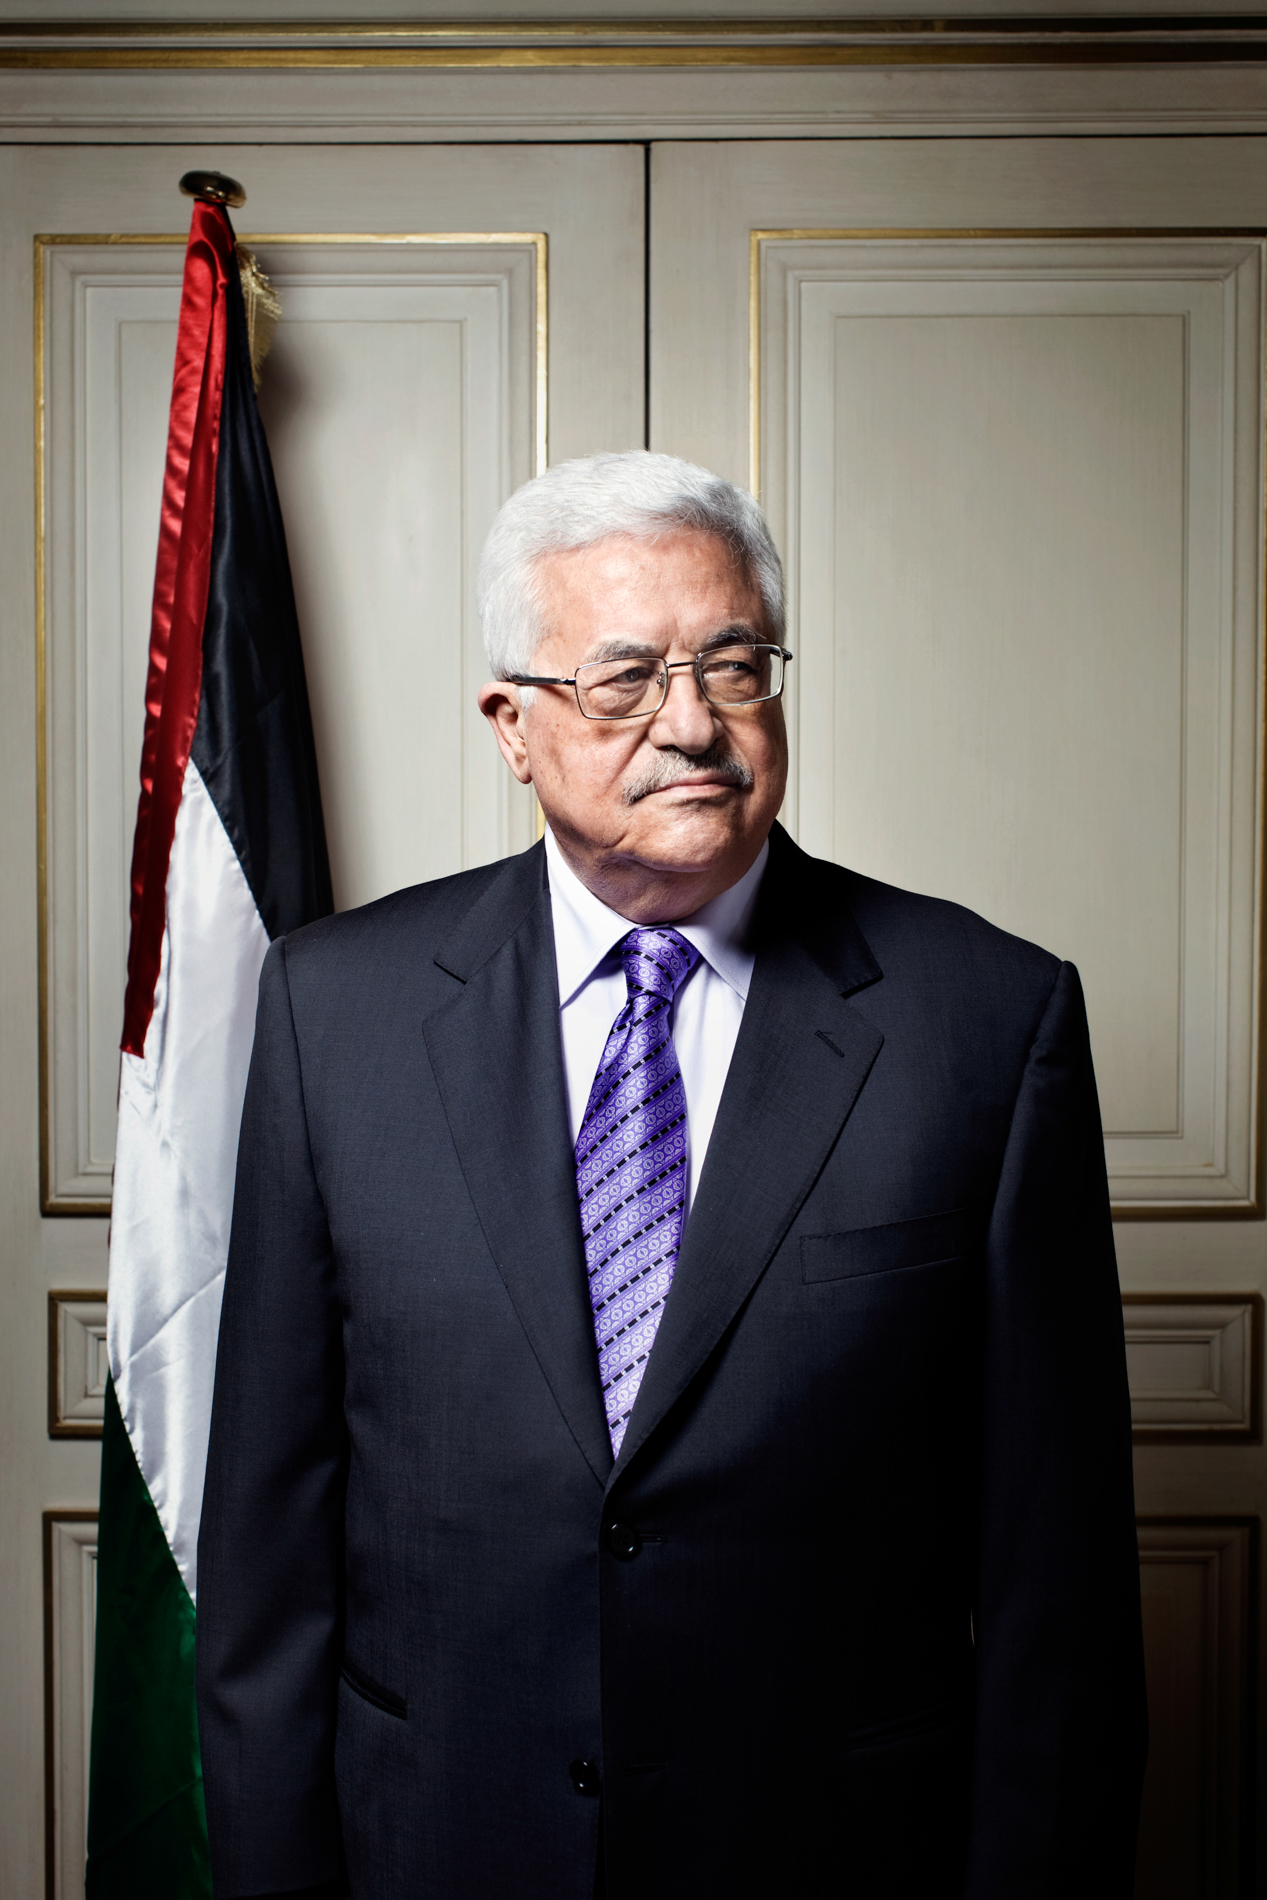 MAHMOUD ABBAS FOR NEWSWEEK